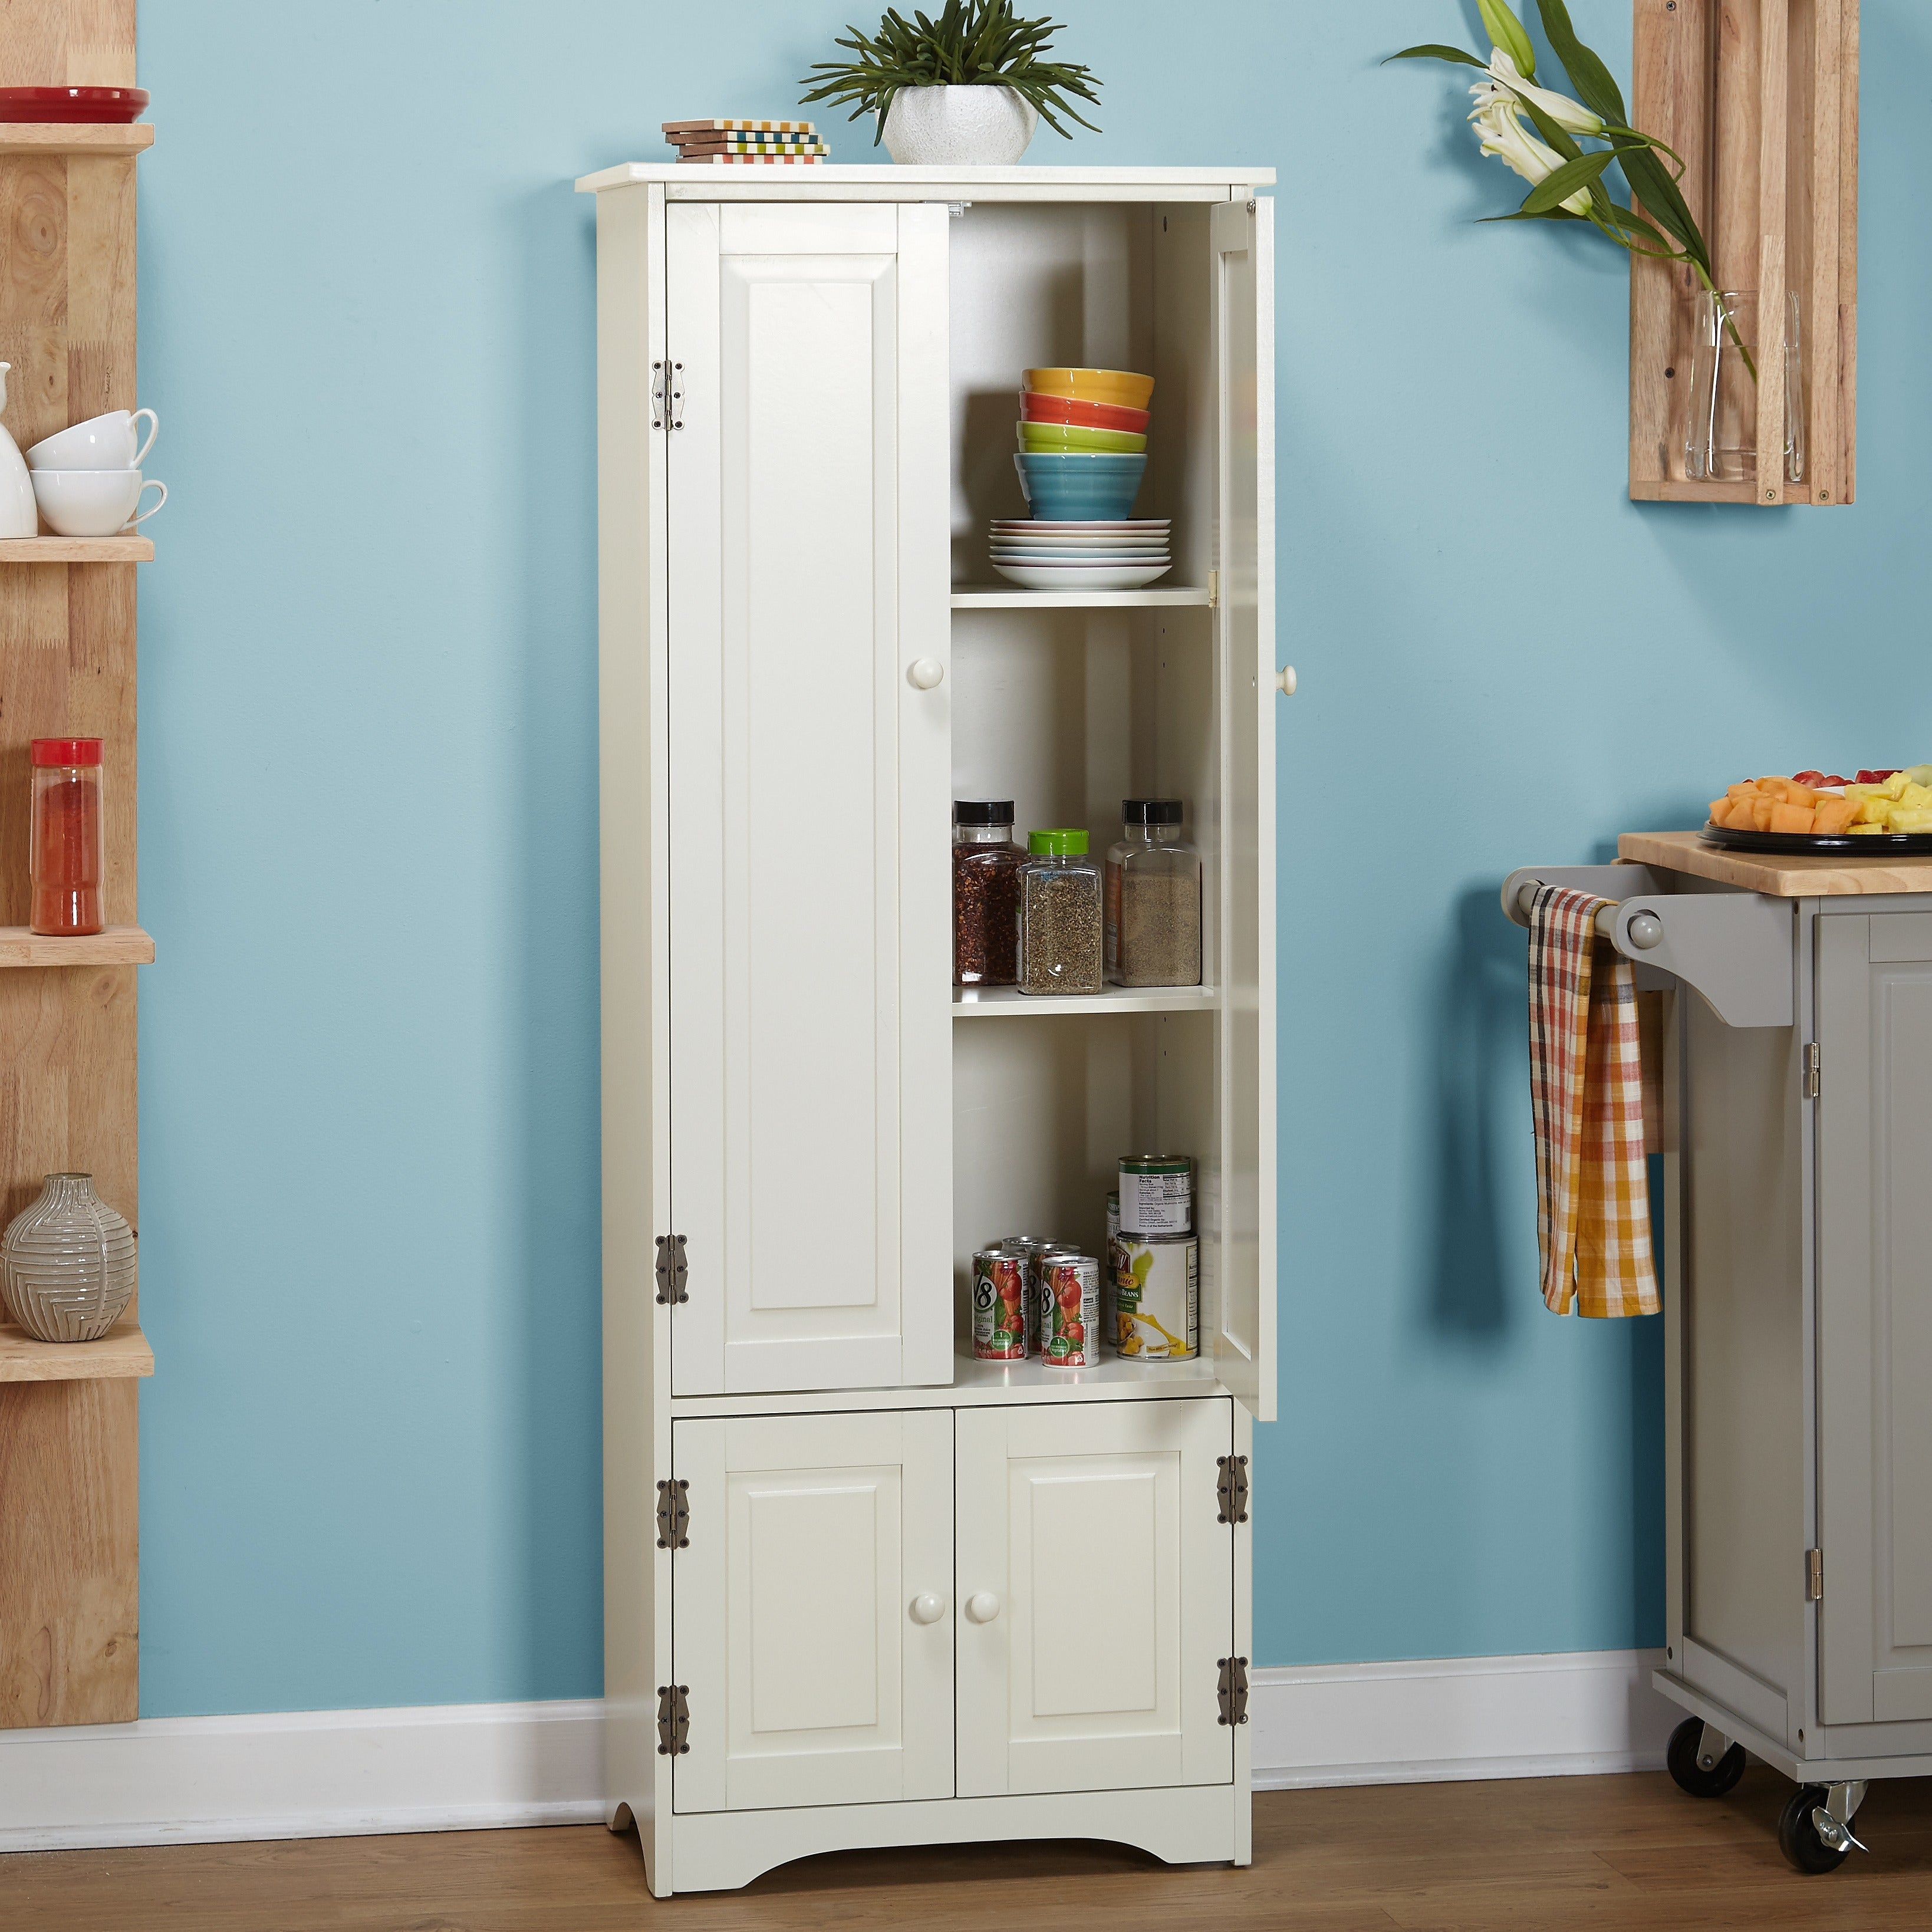 Buy Simple Living Buffets, Sideboards & China Cabinets Intended For Simple Living Maui Buffets (View 5 of 30)